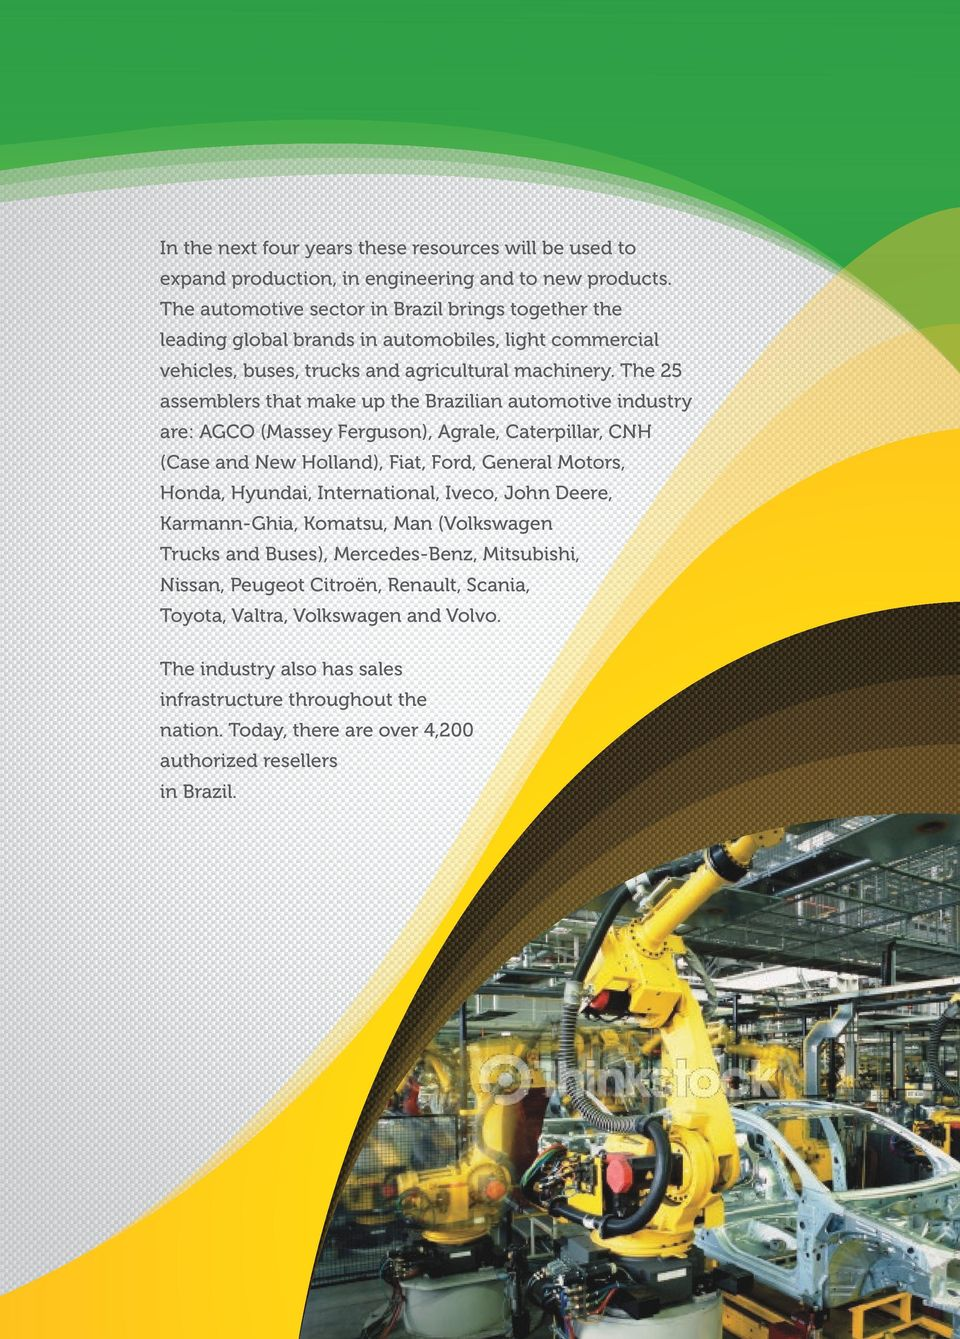 The 25 assemblers that make up the Brazilian automotive industry are: AGCO (Massey Ferguson), Agrale, Caterpillar, CNH (Case and New Holland), Fiat, Ford, General Motors, Honda, Hyundai,